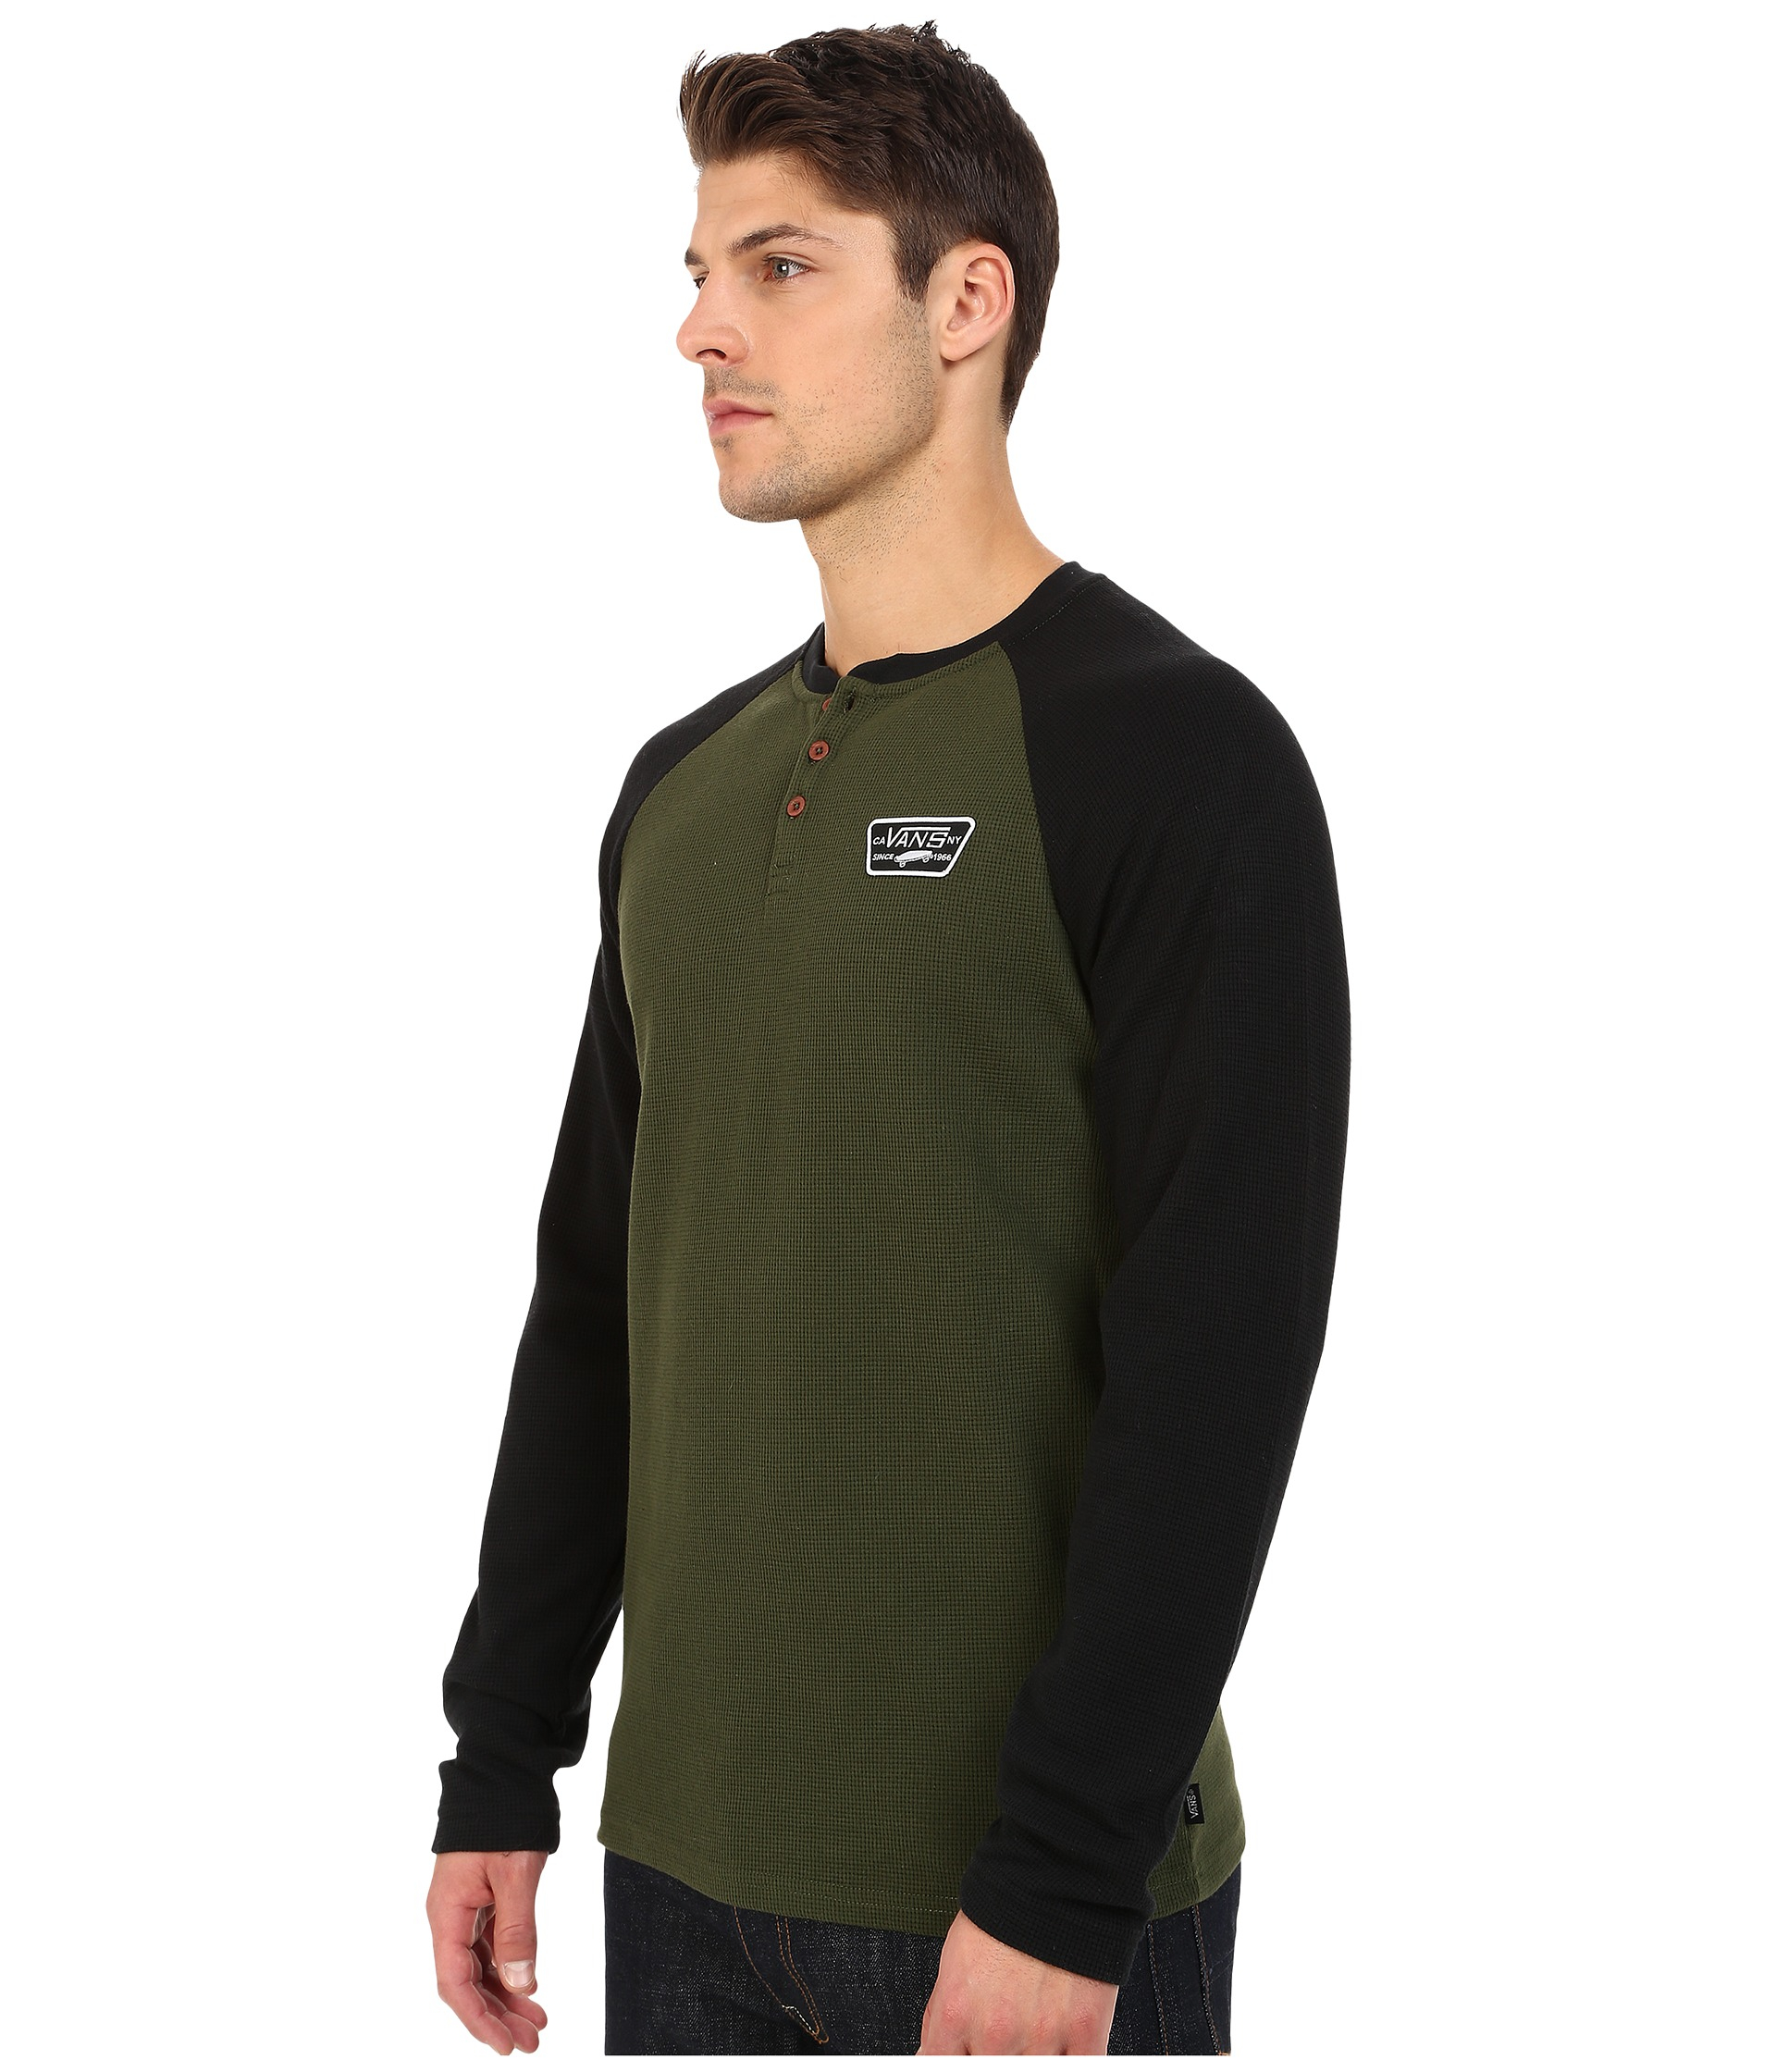 giltner men Shop for mens vans giltner vn3lxhkh thermal long sleeved shirt free shipping on orders over $45 at overstockcom - your online men's clothing shop get 5% in rewards with club o - 21875968.